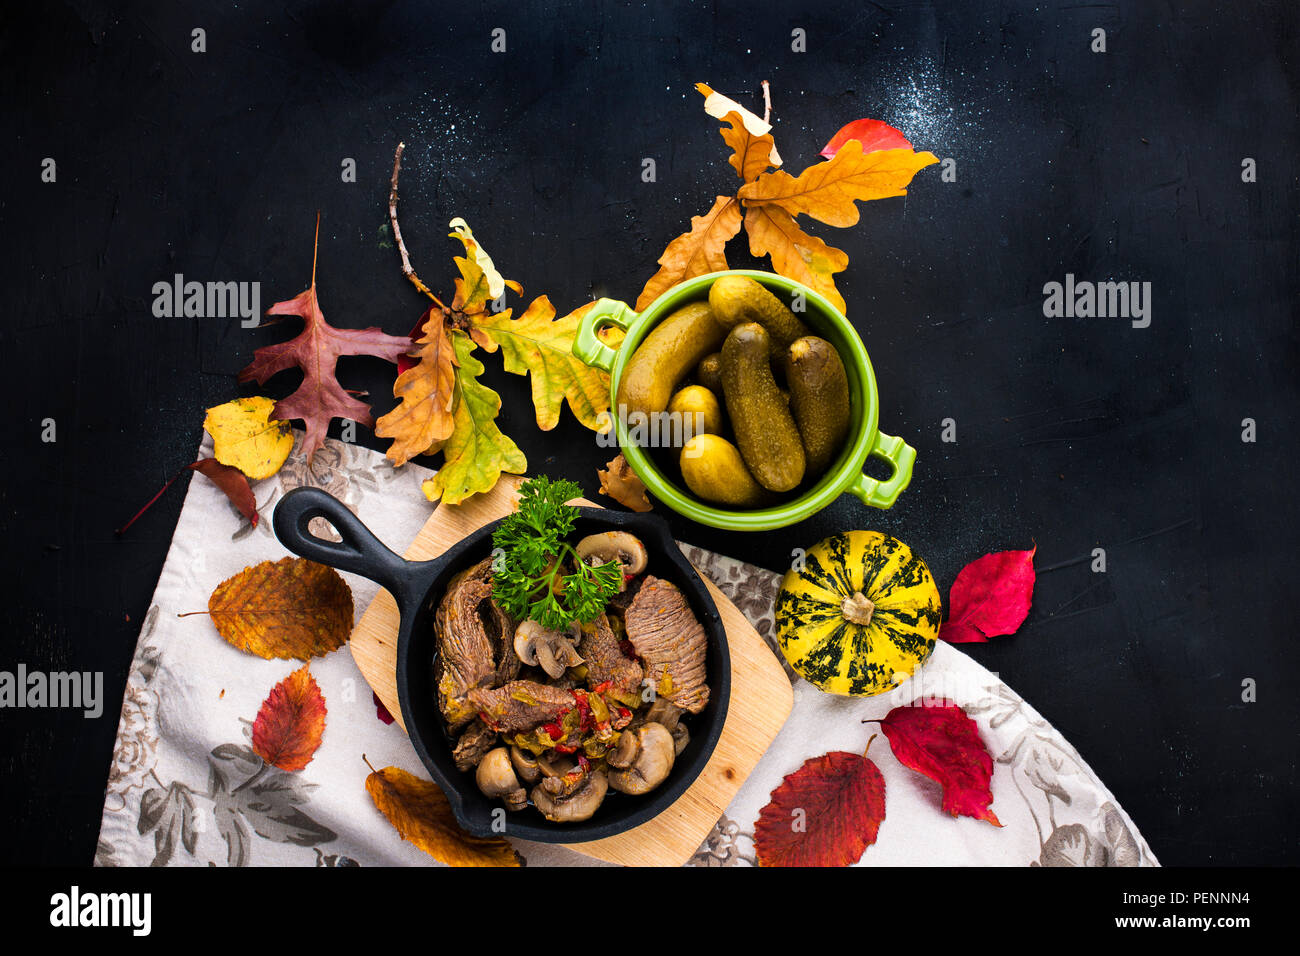 fried meat with mushrooms in a frying pan. on a black background. Lunch with autumn leaves. Top view. - Stock Image